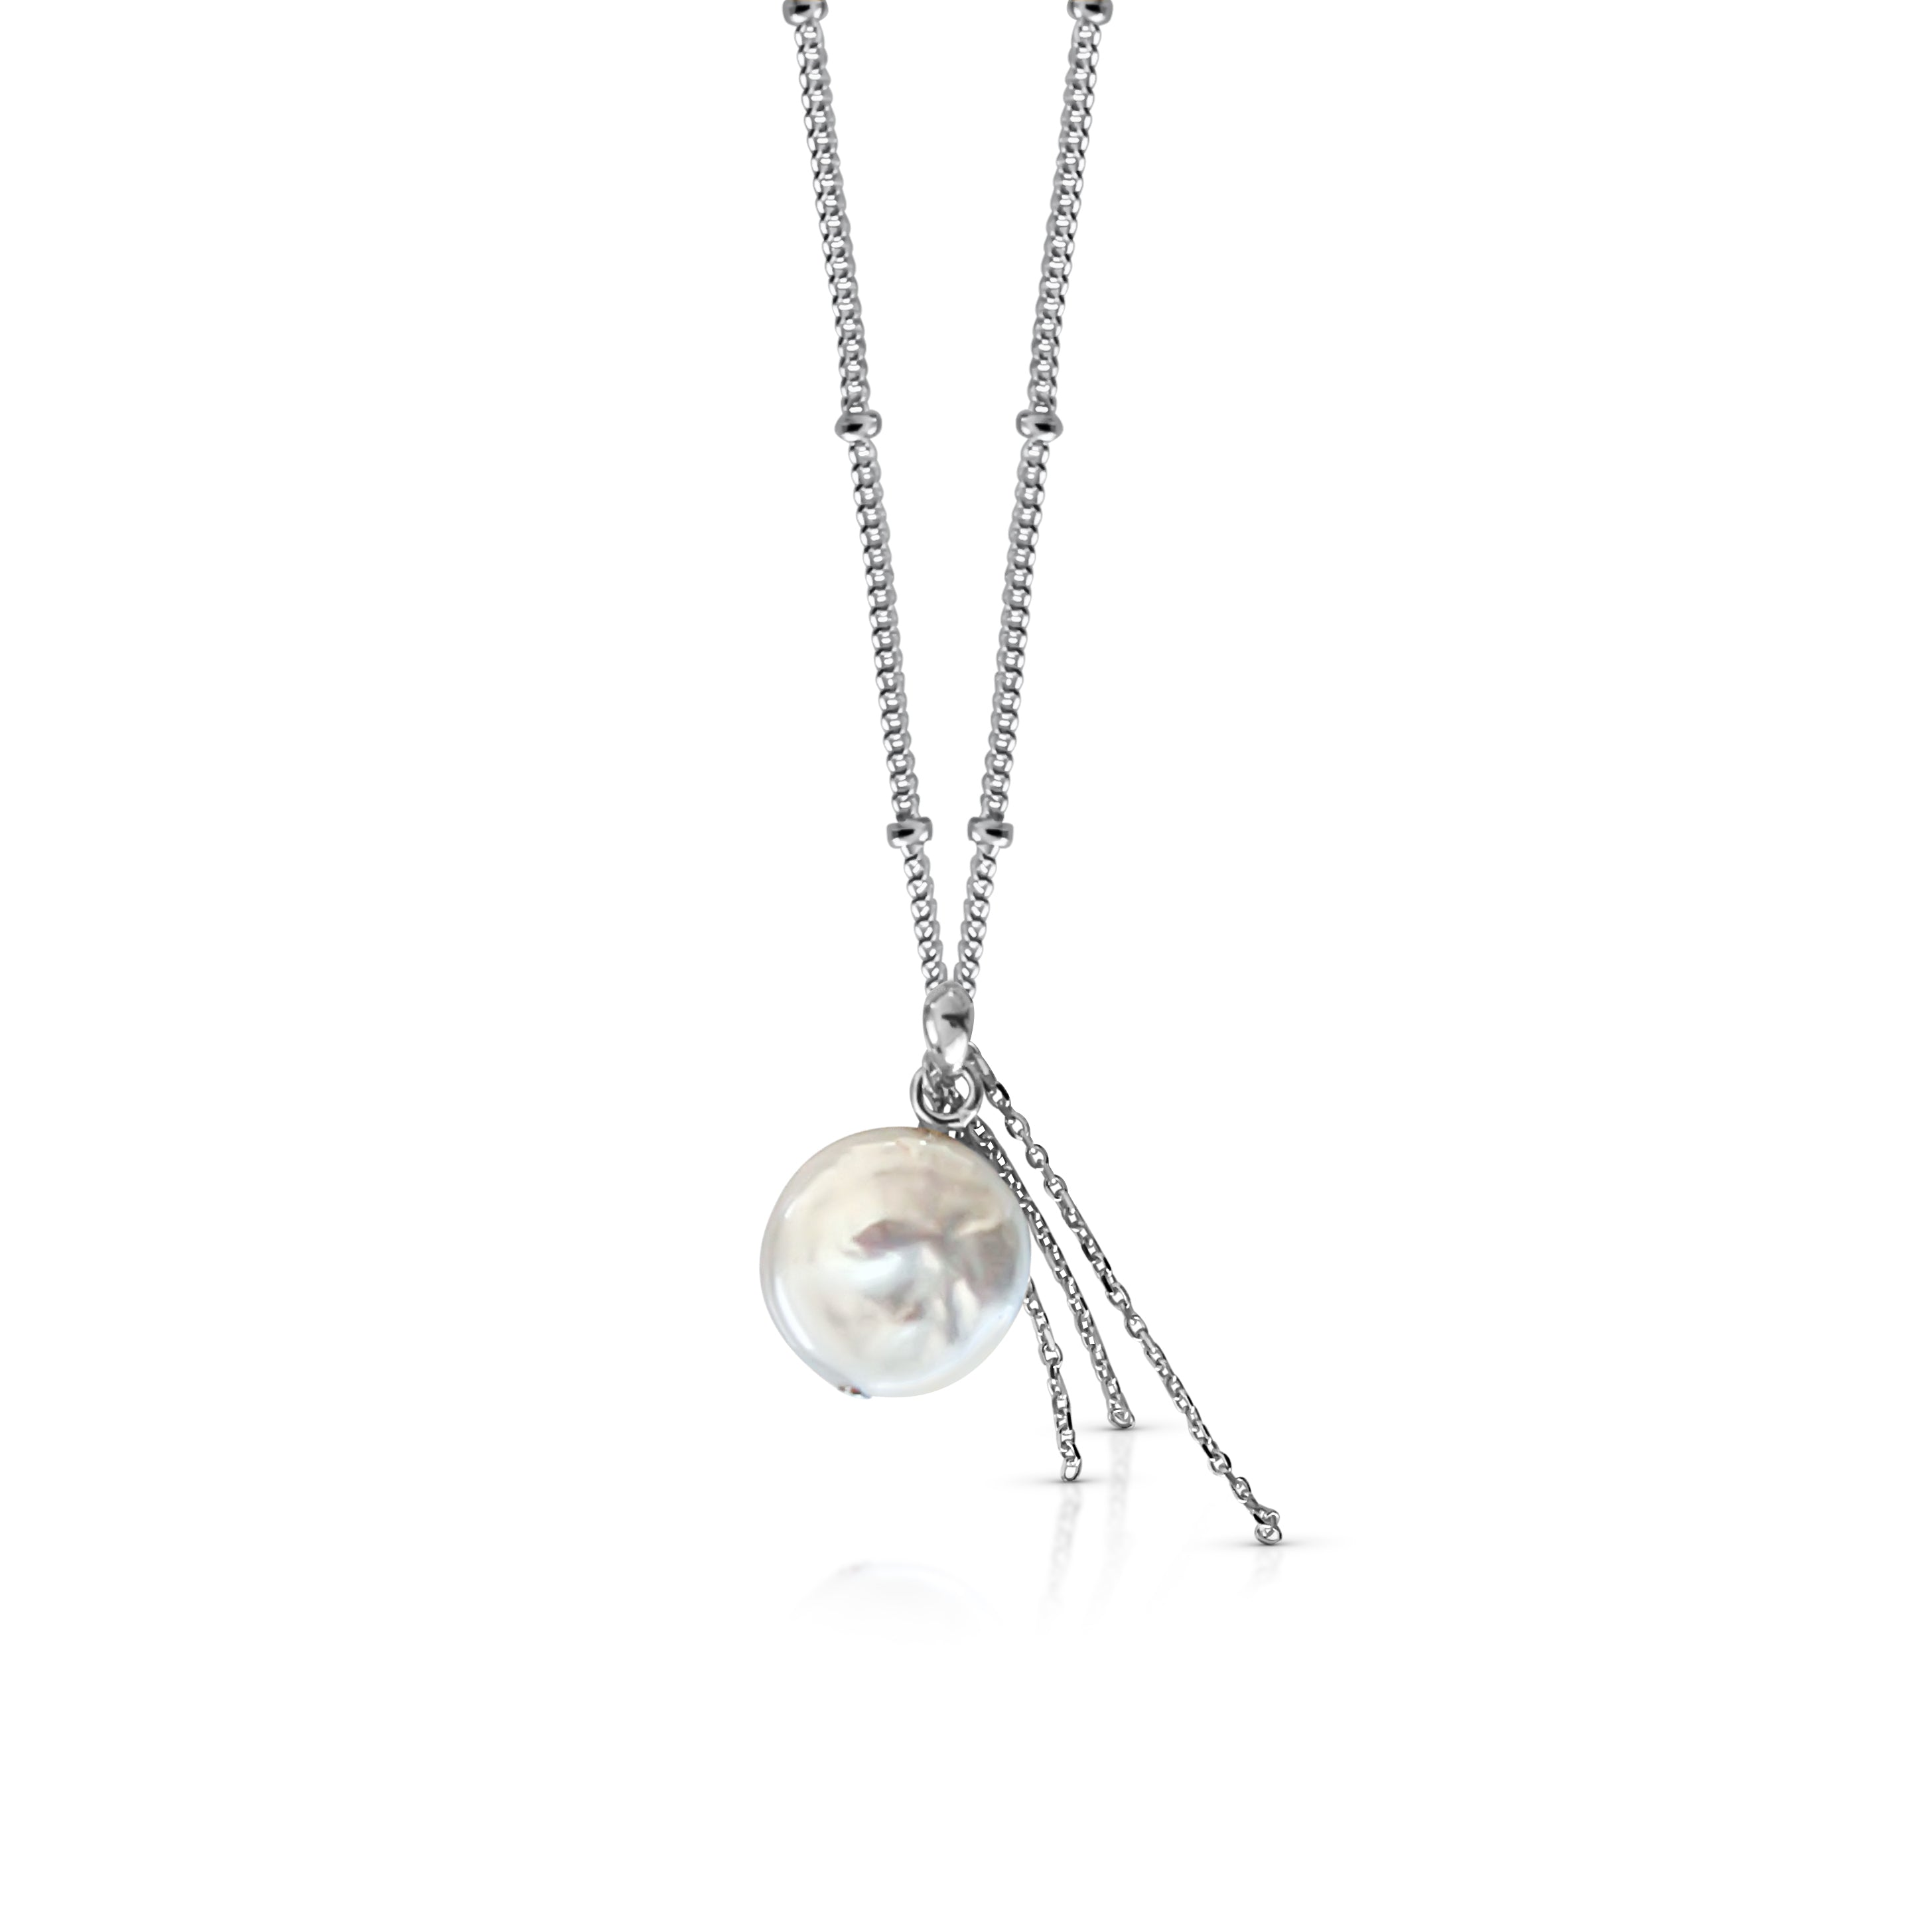 Product image of silver bobble chain necklace with round pearl pendant on white background